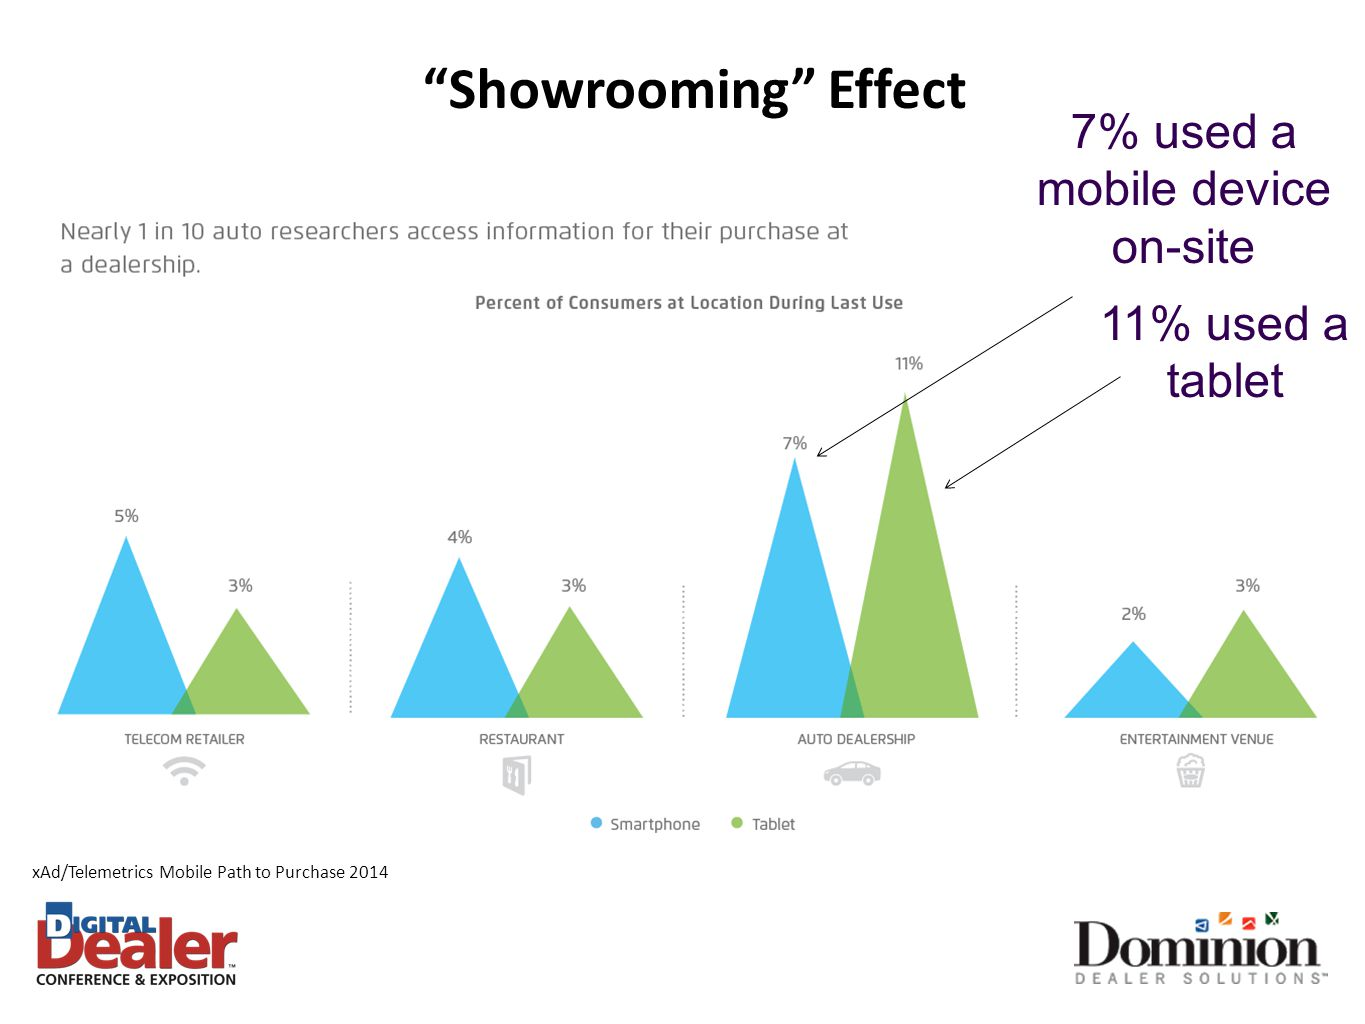 7% used a mobile device on-site 11% used a tablet xAd/Telemetrics Mobile Path to Purchase 2014 Showrooming Effect